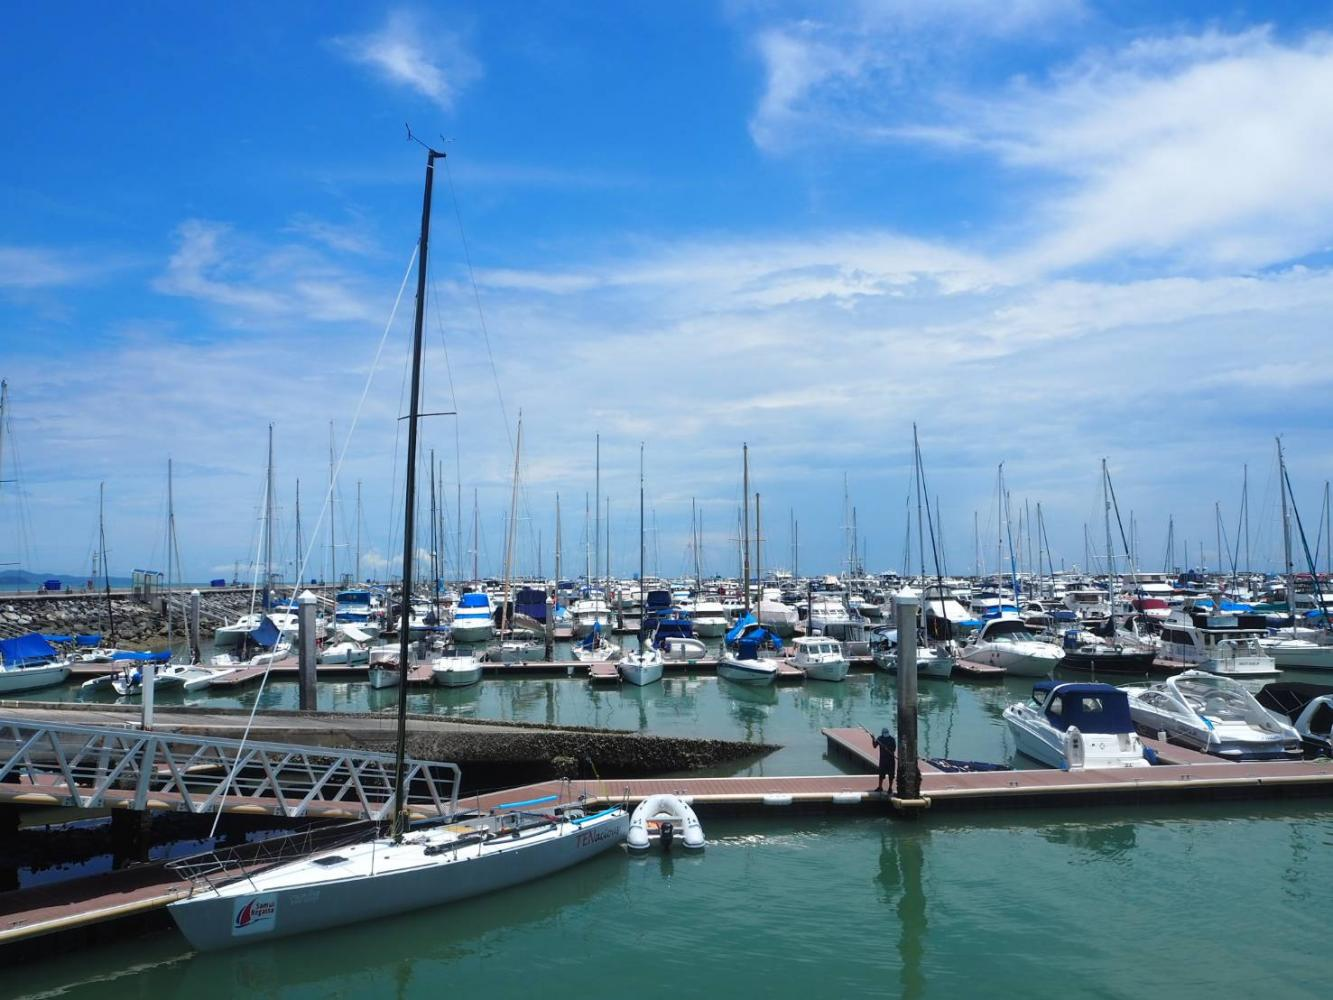 The Ocean Marina Yacht Club in Pattaya. The TAT is promoting yacht tourism after getting many enquiries from Europeans.